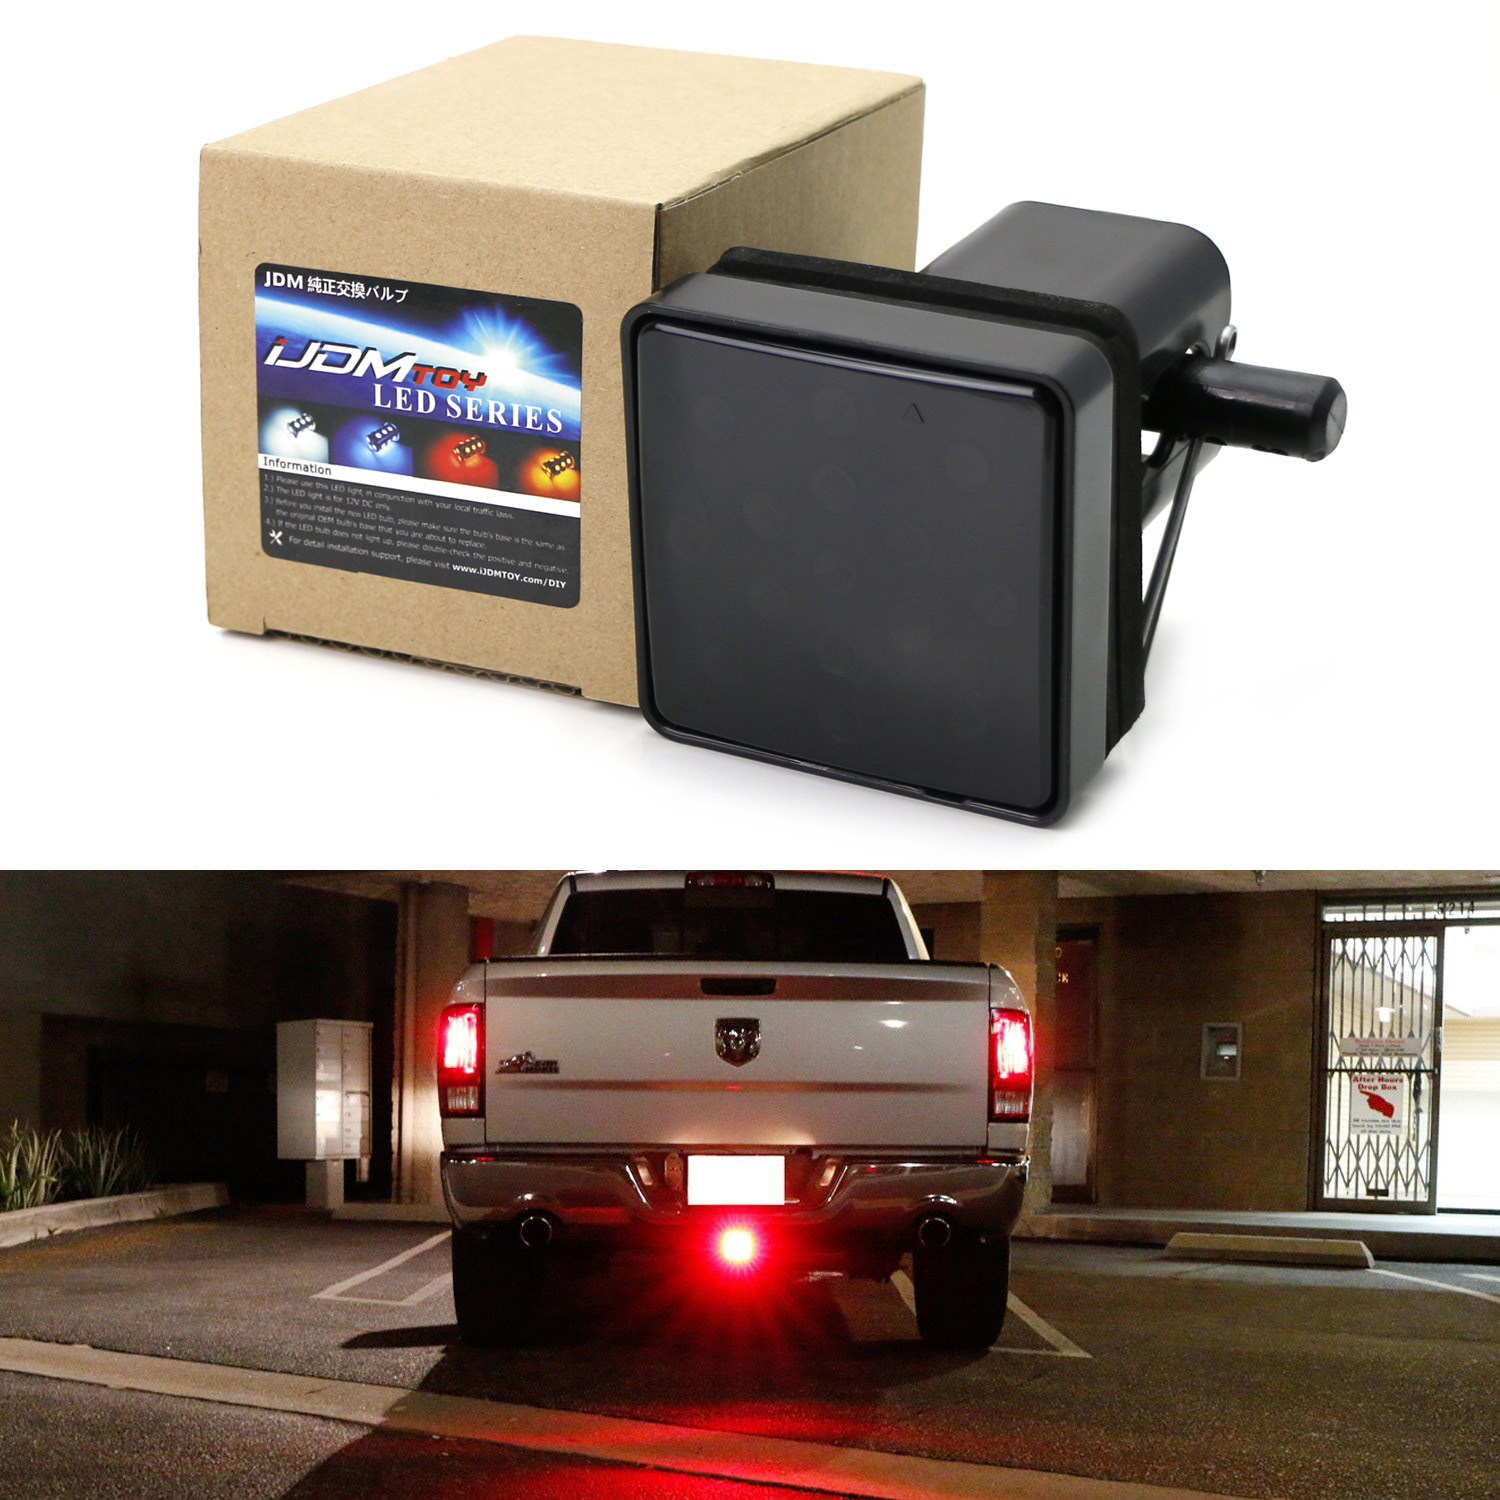 Trailer Hitch Cover Truck Receiver Hitch Plug Insert Sunset Skydiver CafePress